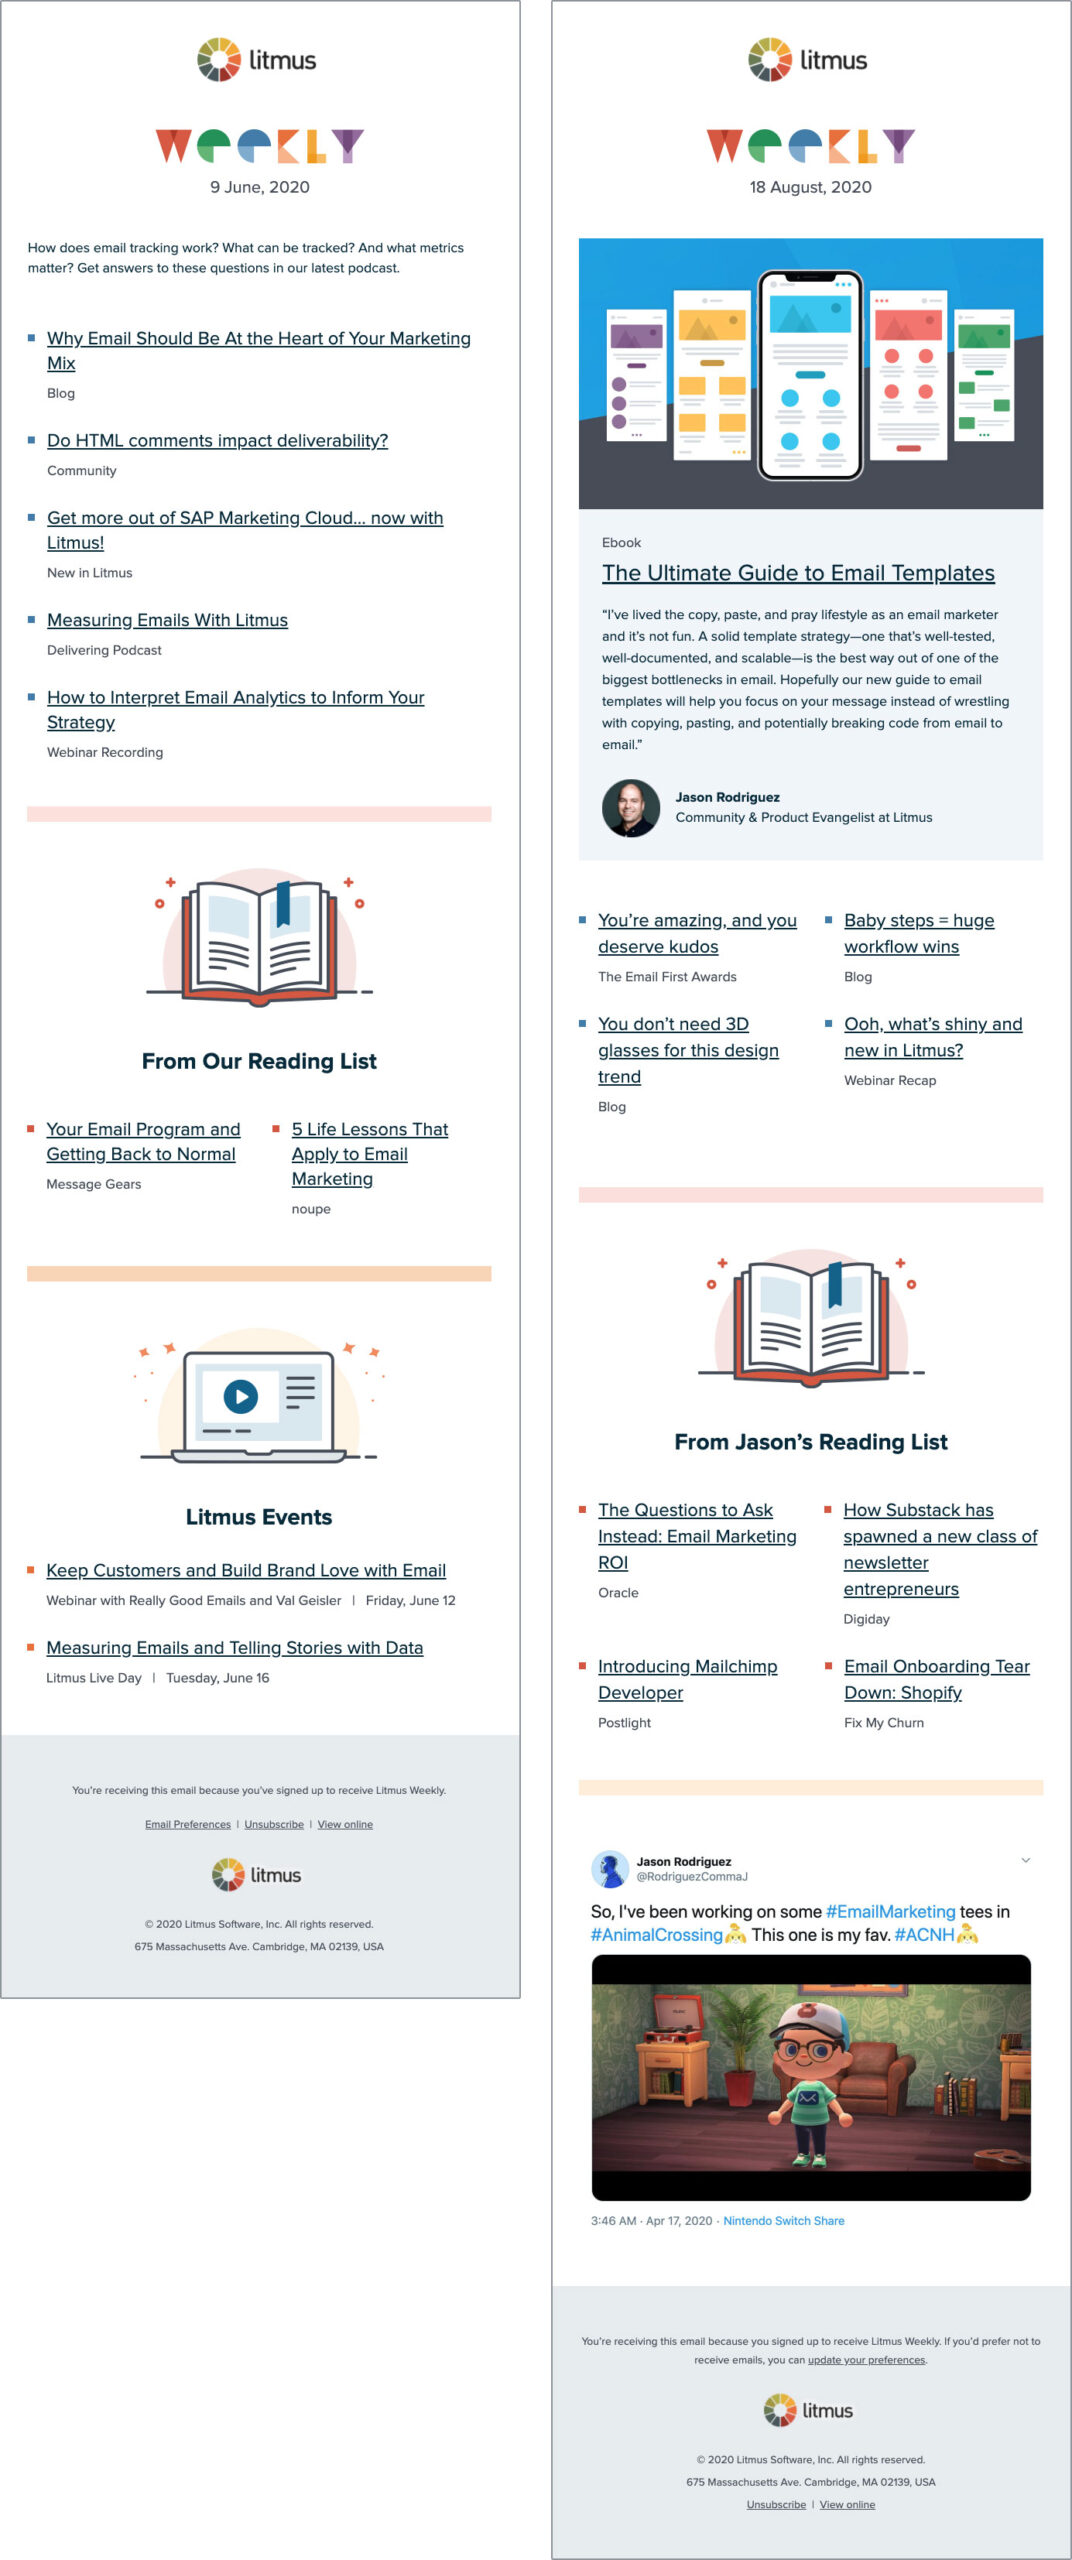 Litmus Weekly design before and after